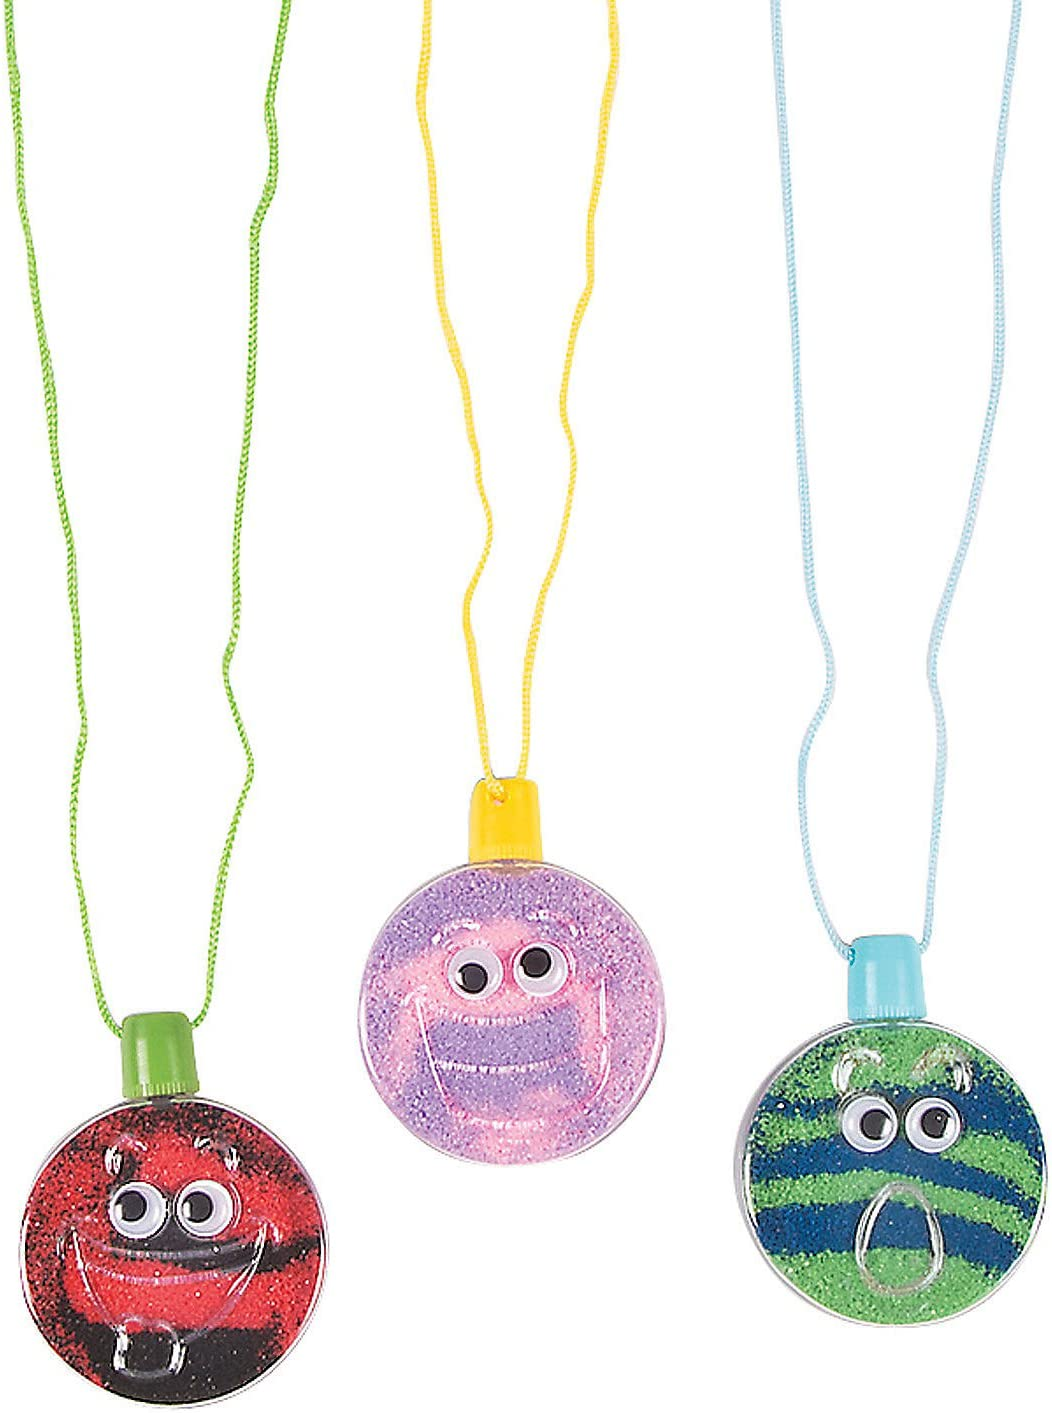 Wiggle Eye Sand Art Necklace - Crafts Home specialty shop and Kids Fun Popular products for Acti